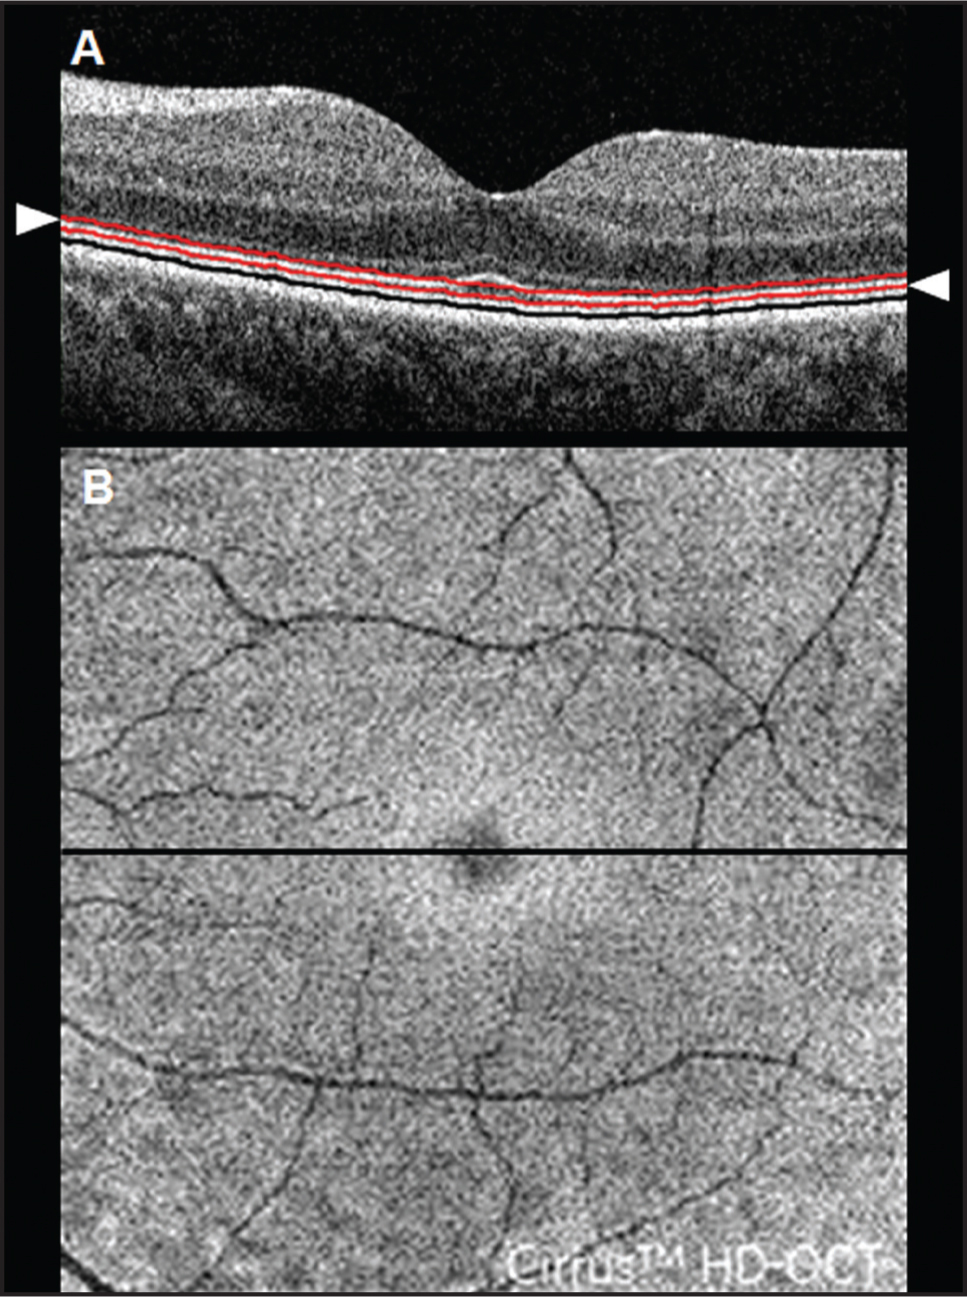 Spectral-domain optical coherence tomography outer retinal slab en face imaging of a healthy retina in a 52-year-old woman. (A) A horizontal B-scan through the foveal center showing the black line segmenting the retinal pigment epithelium (RPE) and the red lines showing the outer and inner segmentation lines (arrowheads) used to generate the en face shown in B. The outer segmentation line is located 20 μm above the RPE, and the inner segmentation line is positioned 20 μm above the outer segmentation line. (B) The outer retinal slab en face image generated from the boundary lines described in A. The horizontal line on the en face image corresponds to the B-scan shown in A.